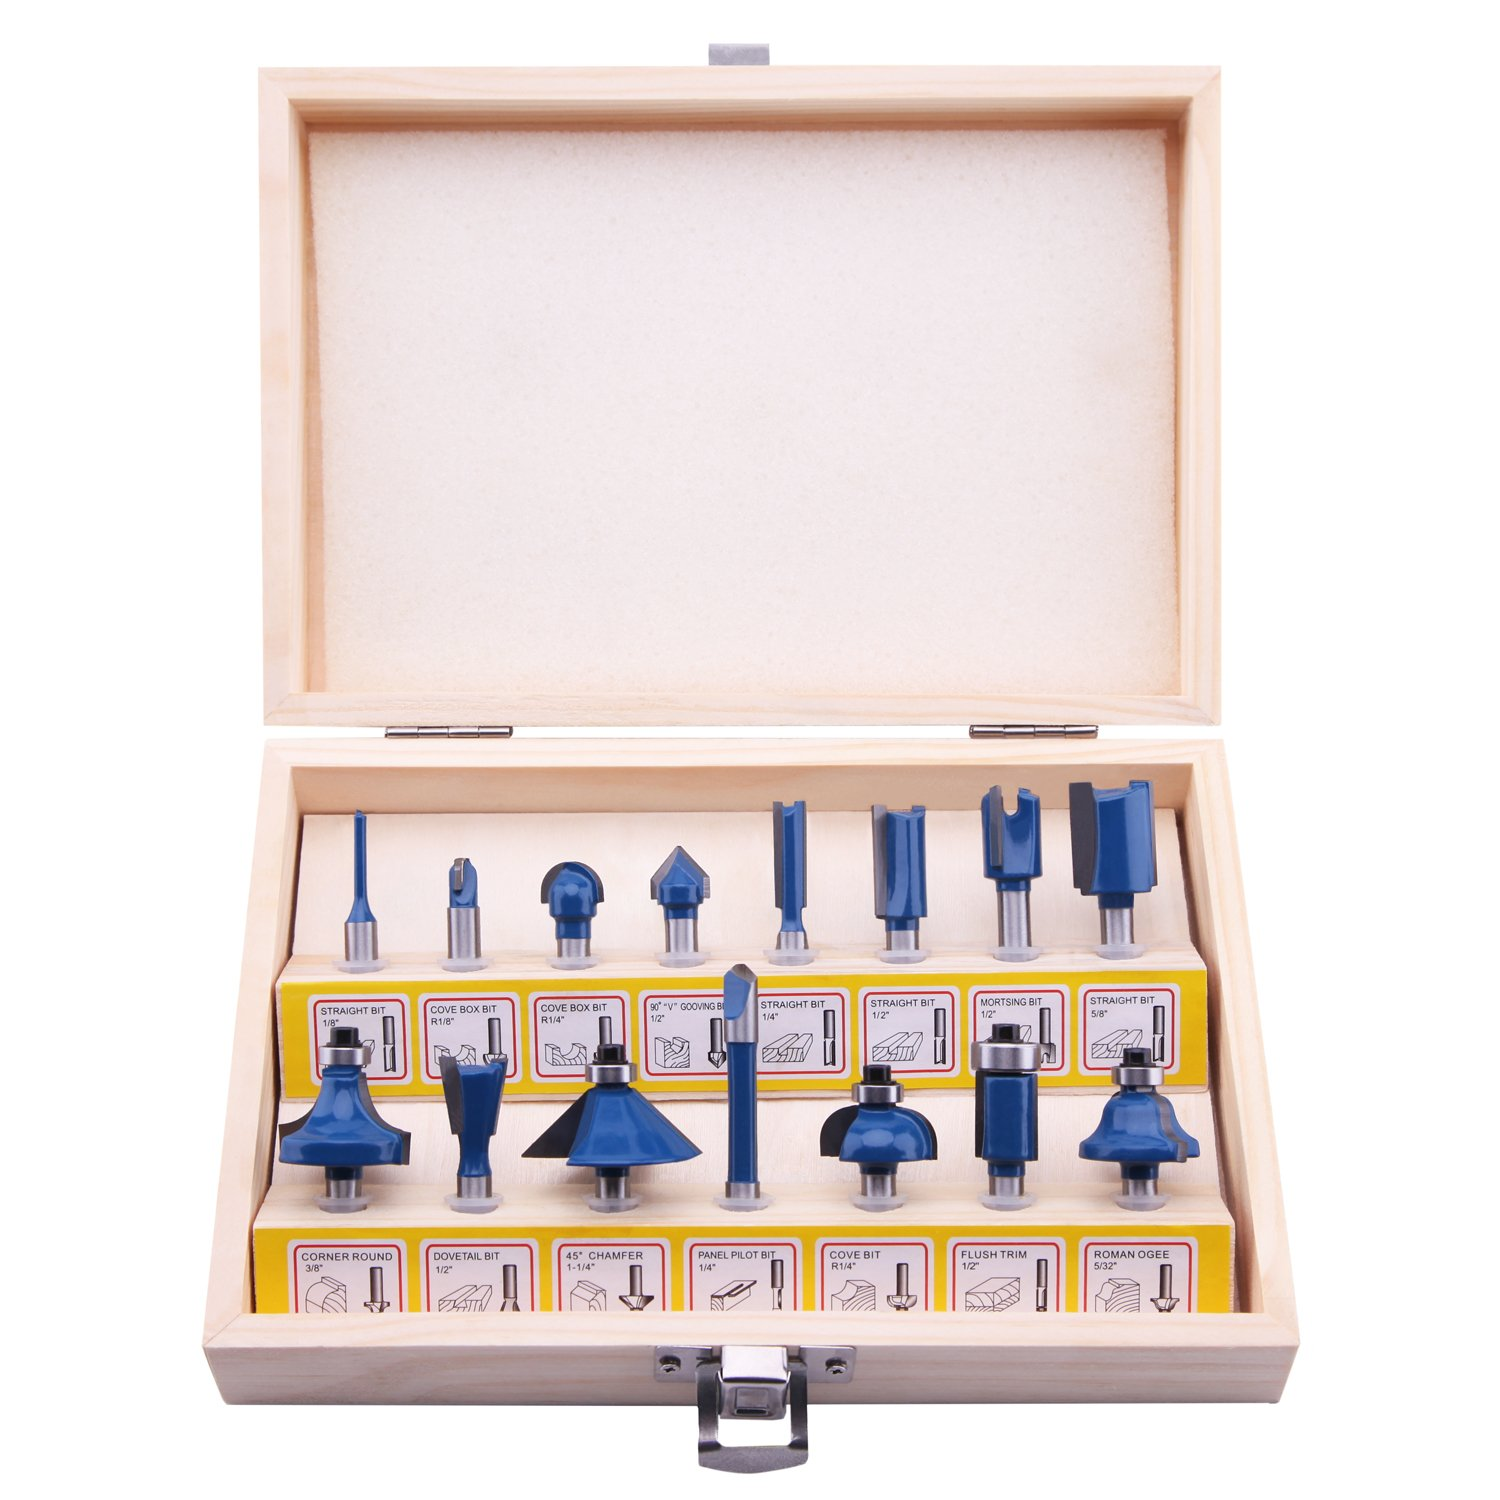 LU&MN Carbide Tipped Router Bit Set, 1/4 Inch Shank T Shape (15 Piece Kit), Wood Milling Saw Cutter (Woodworking Tools for Home Improvement and DIY) (15-Piece Blue)